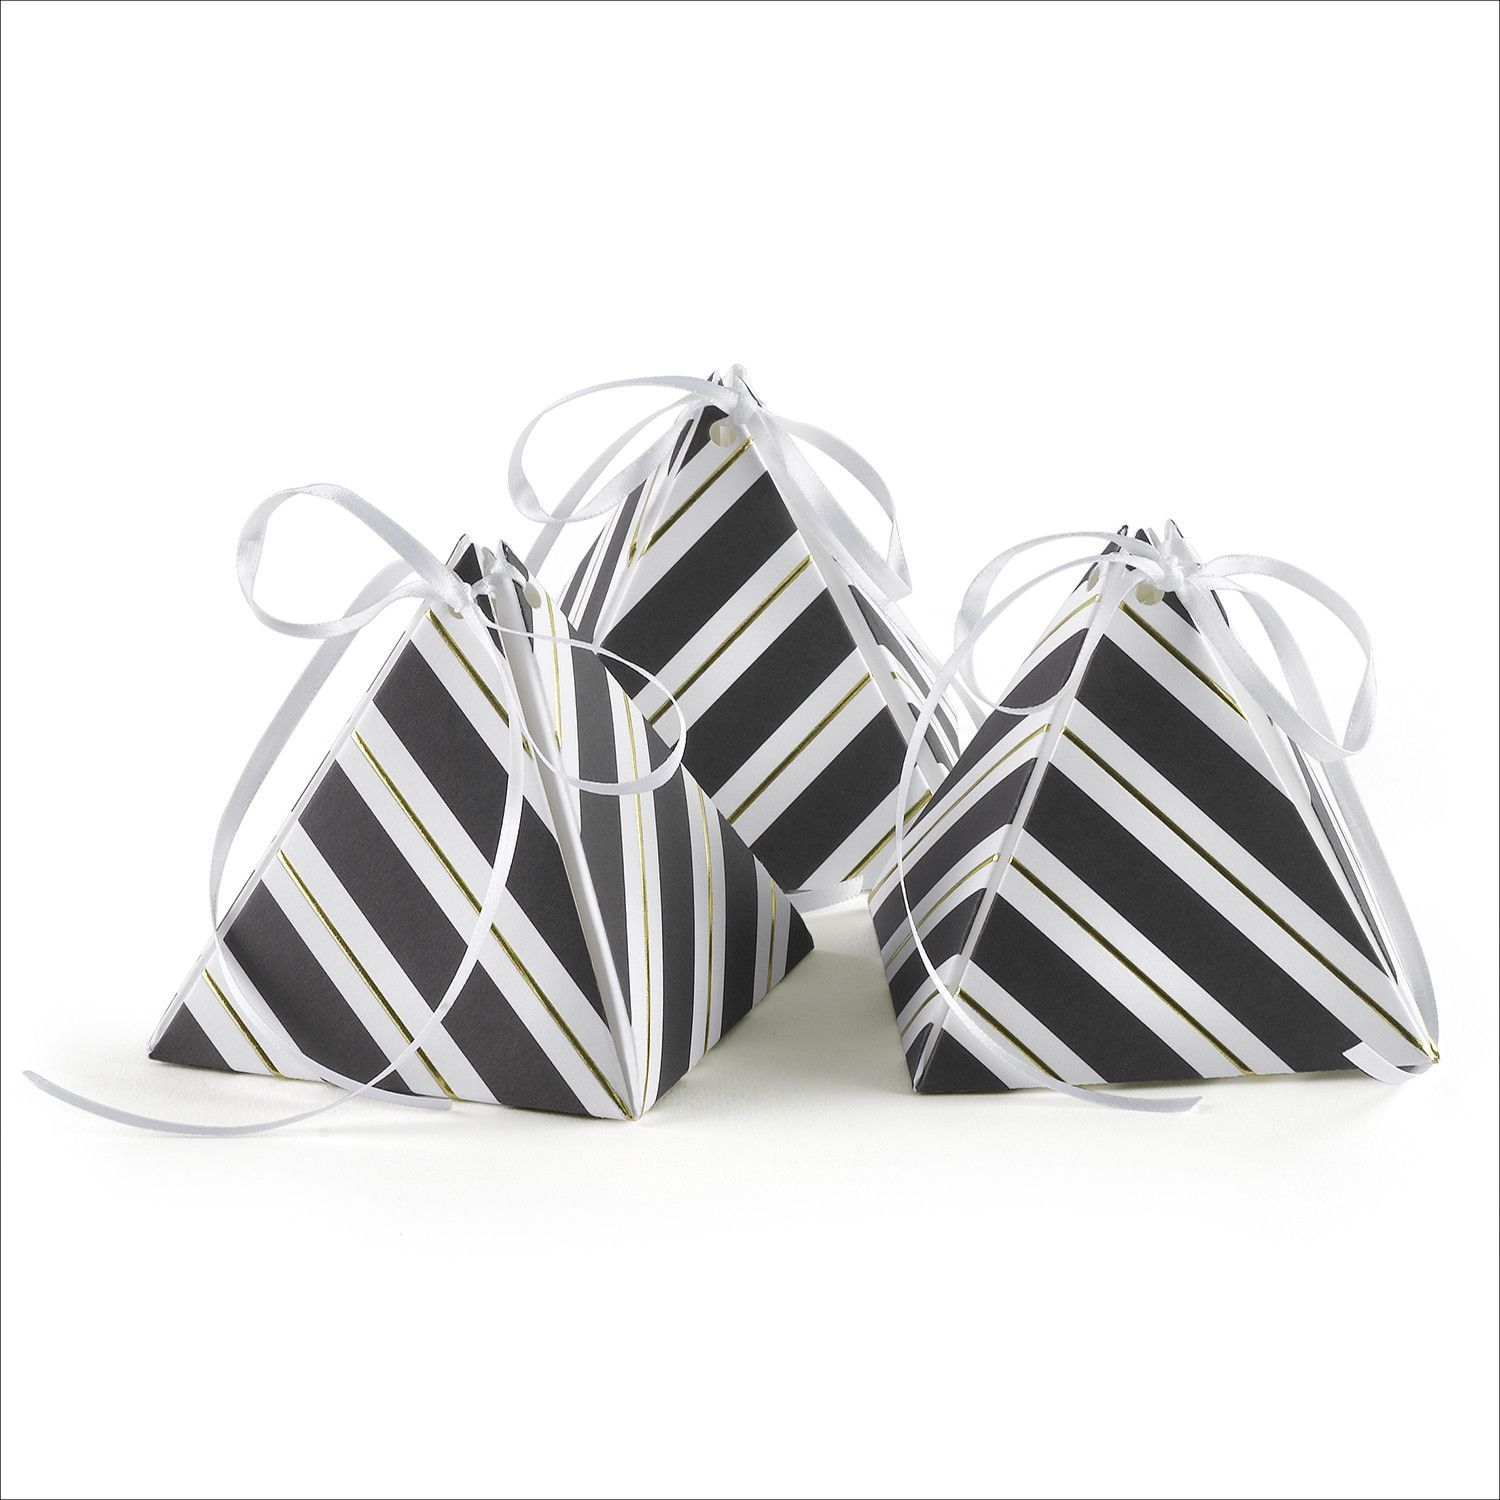 Make a monochromatic statement at your party, wedding, themed events, corporate events, birthday parties and more with the Black and White Striped Pyramid Wedding Party Favor Box. This adorable black